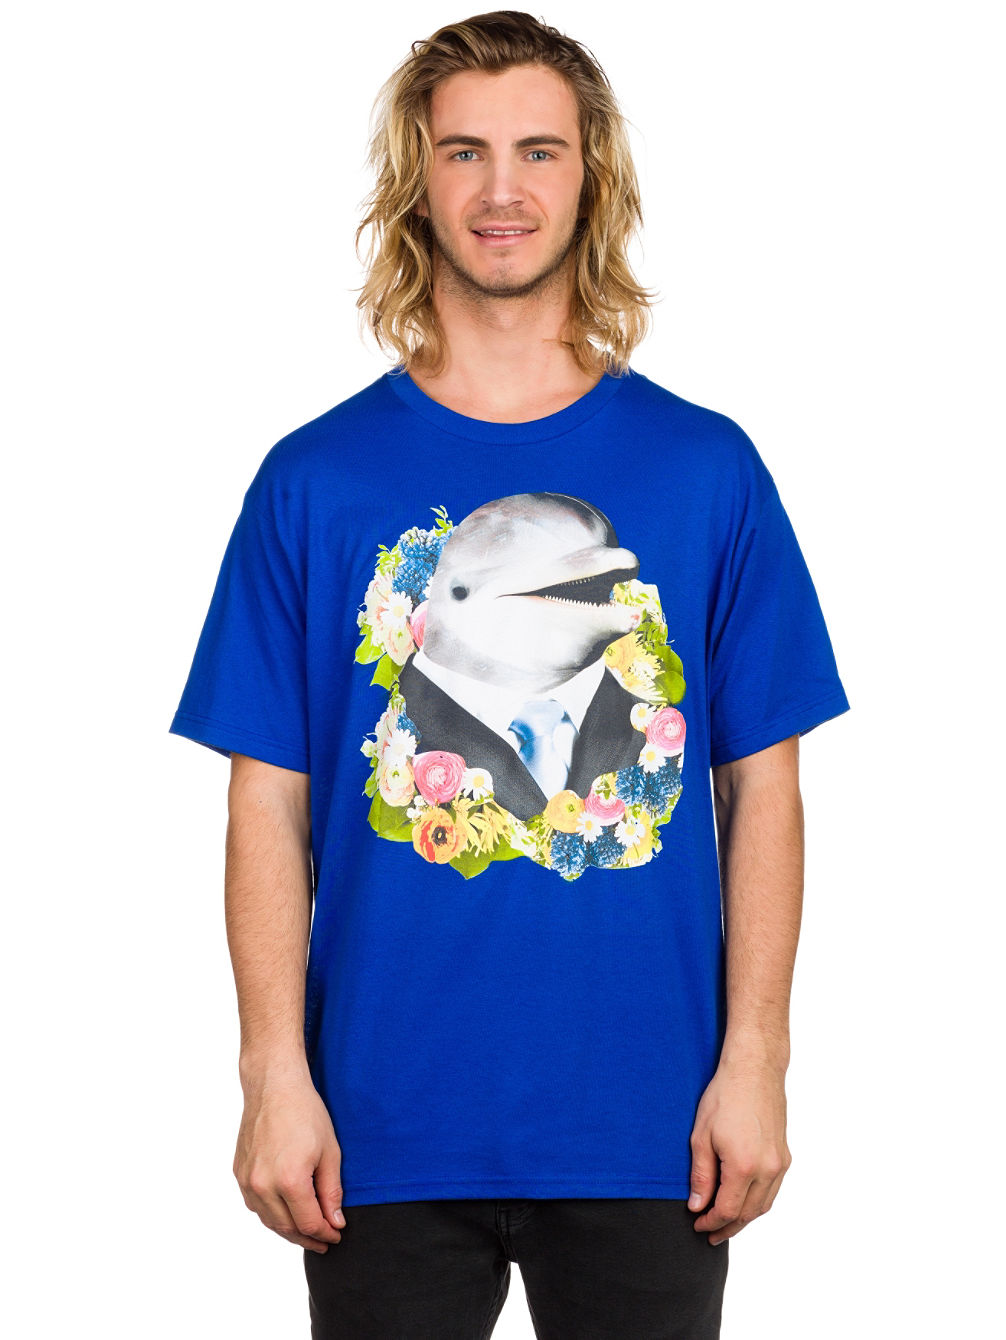 a-lab-dolphin-business-t-shirt